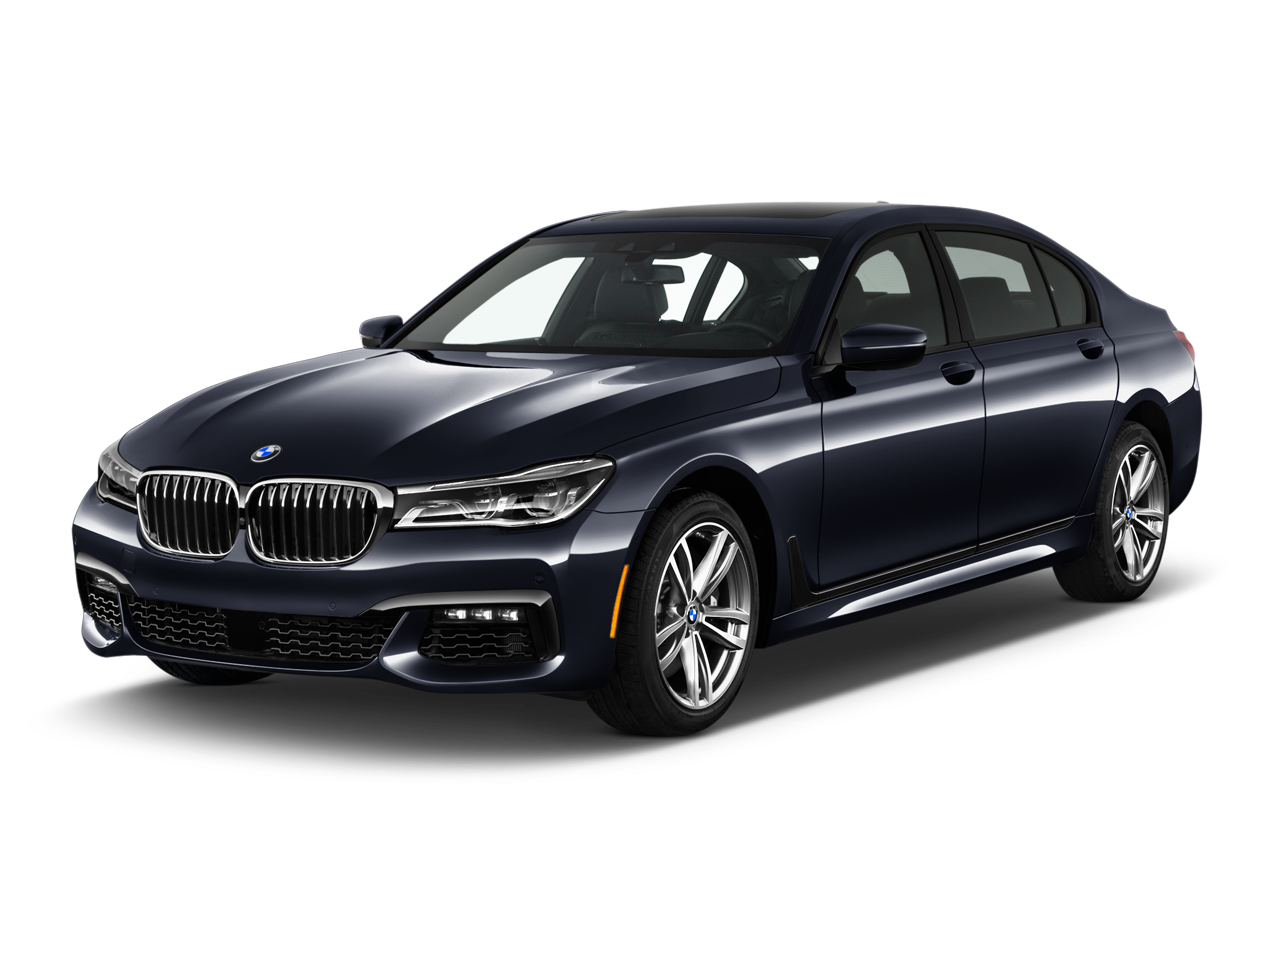 new 2017 bmw 7 series 750i xdrive near omaha ne bmw of omaha. Black Bedroom Furniture Sets. Home Design Ideas